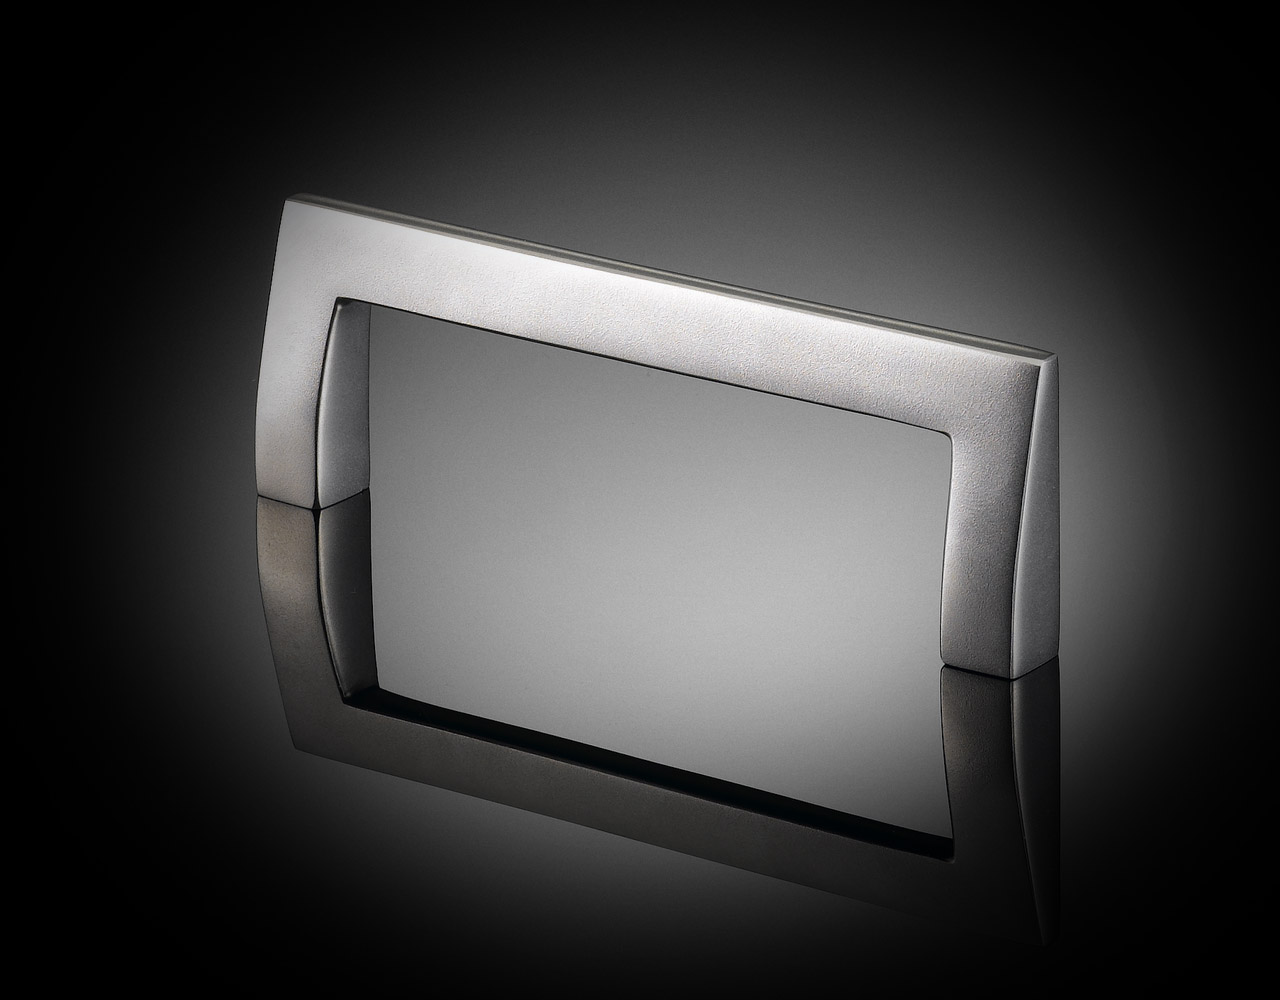 IRC01 Ian Ritchie designed bespoke cabinet handle